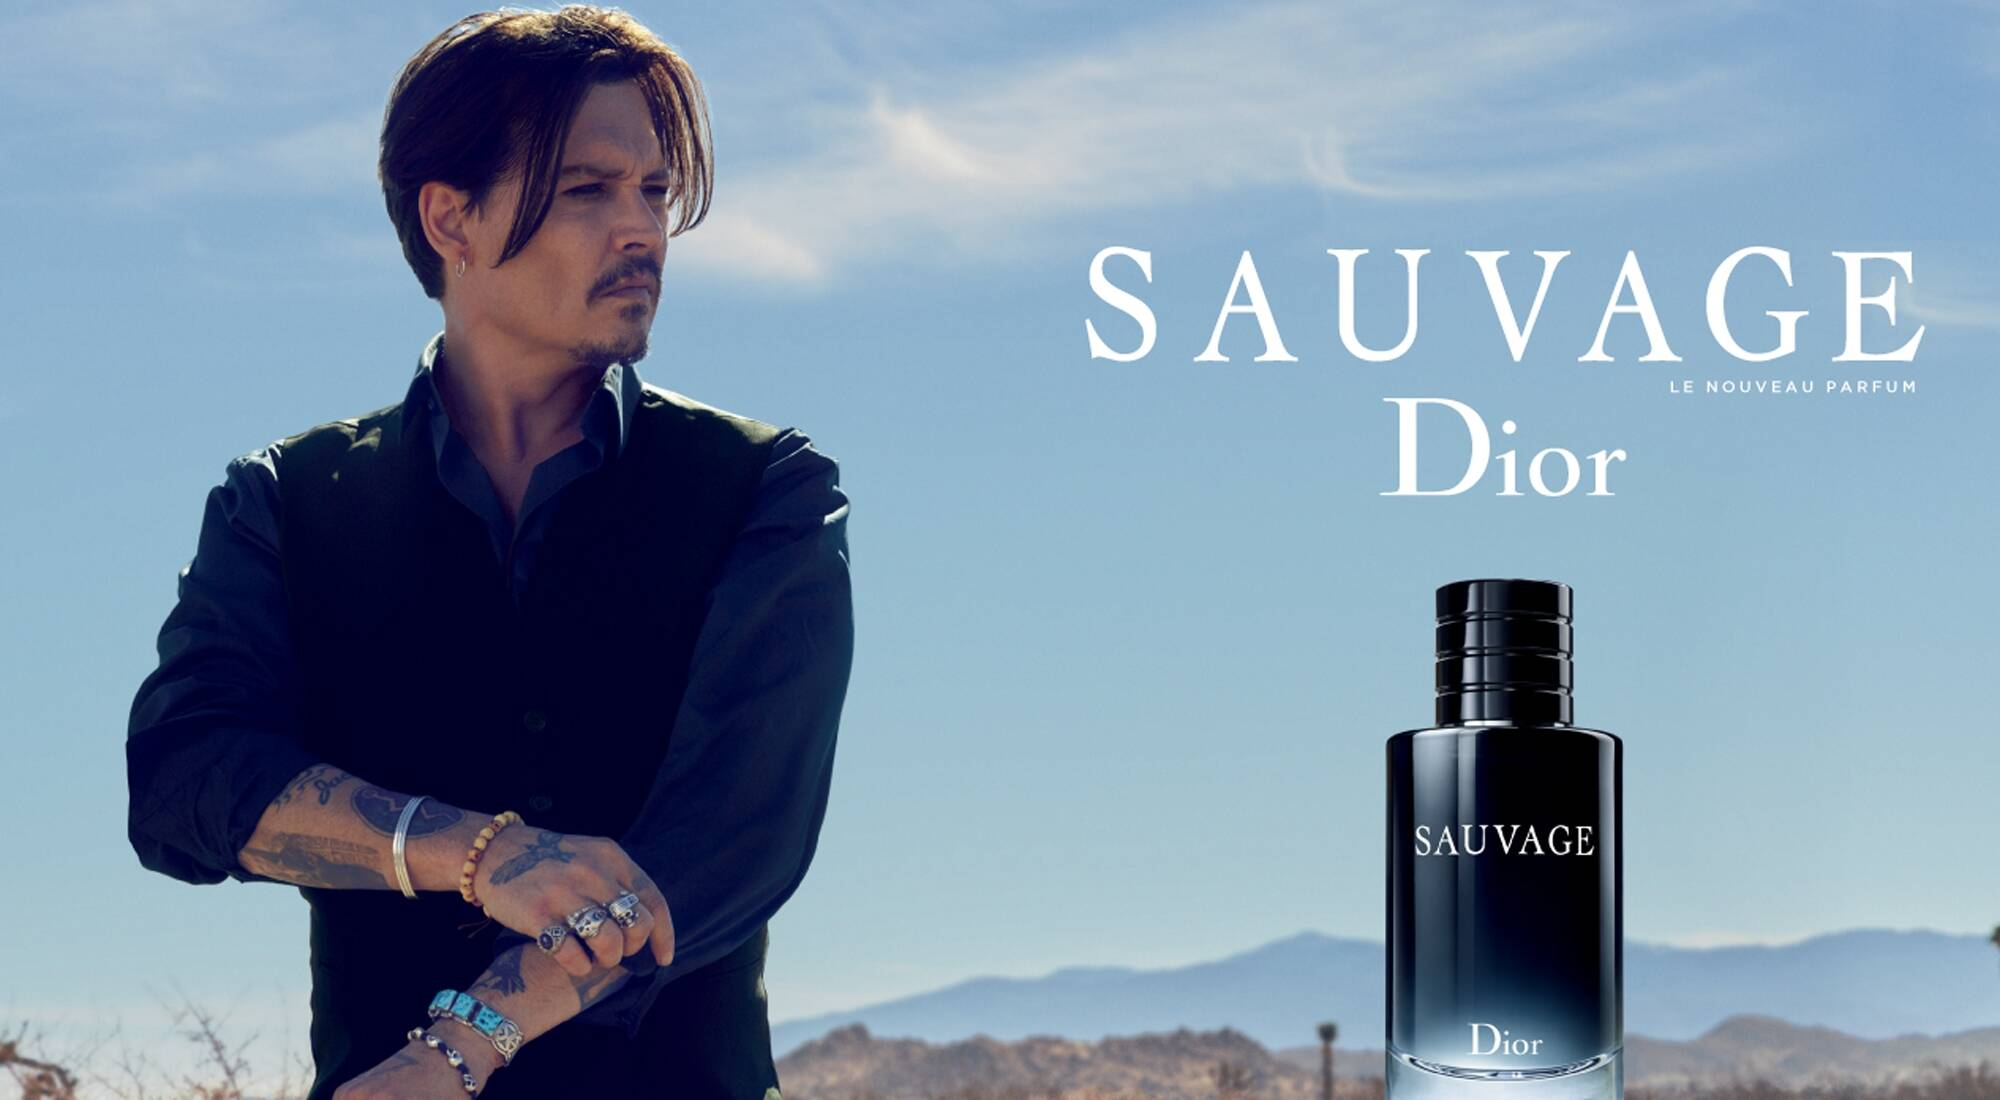 Johnny Depp embodies Sauvage, the new men's fragrance from Dior - LVMH